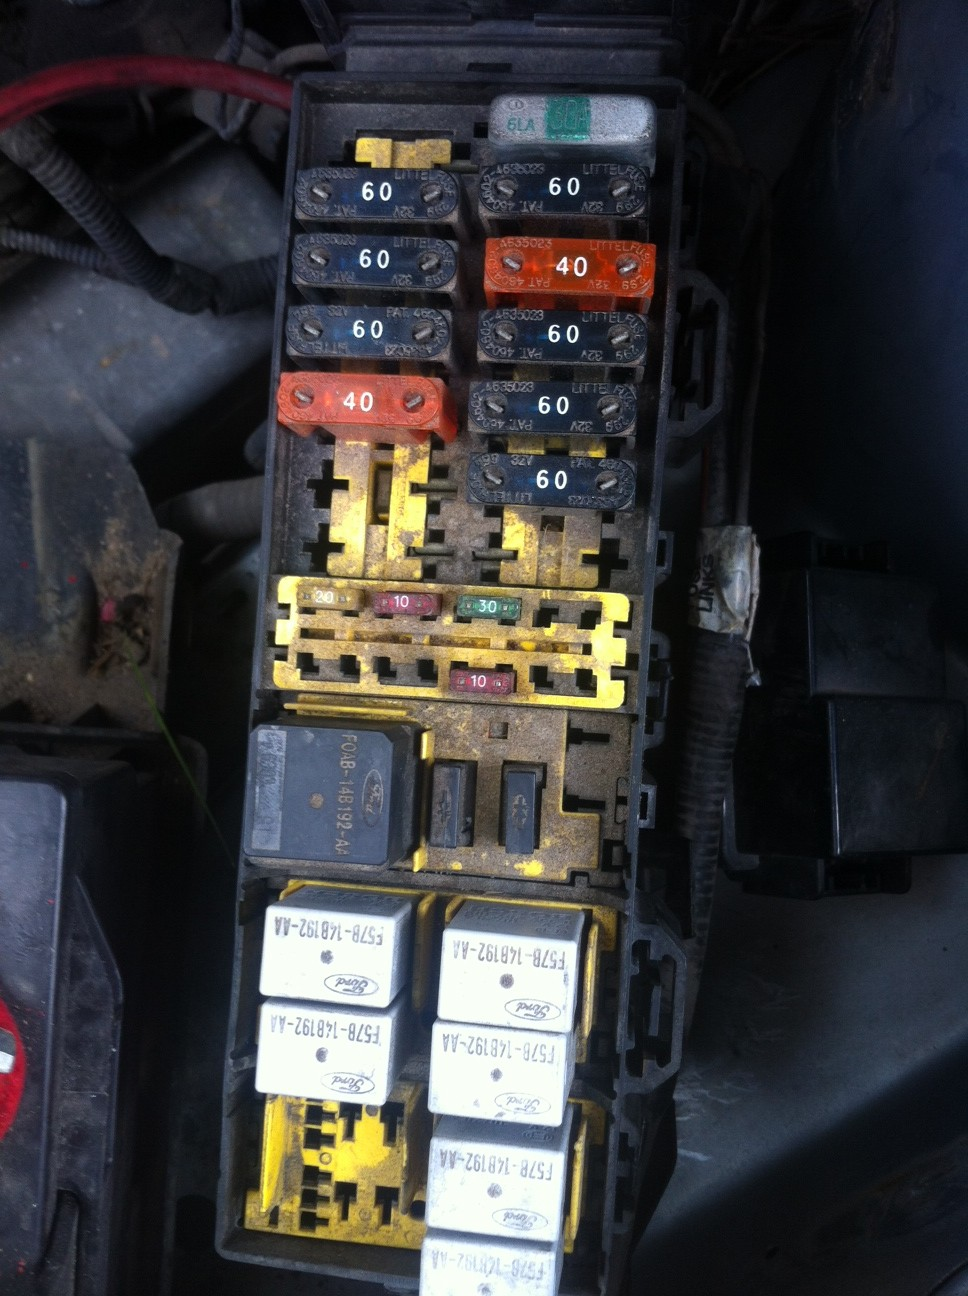 Ford Ranger Fuse Panel Diagram Moreover 1998 Ford Ranger Fuse Box On